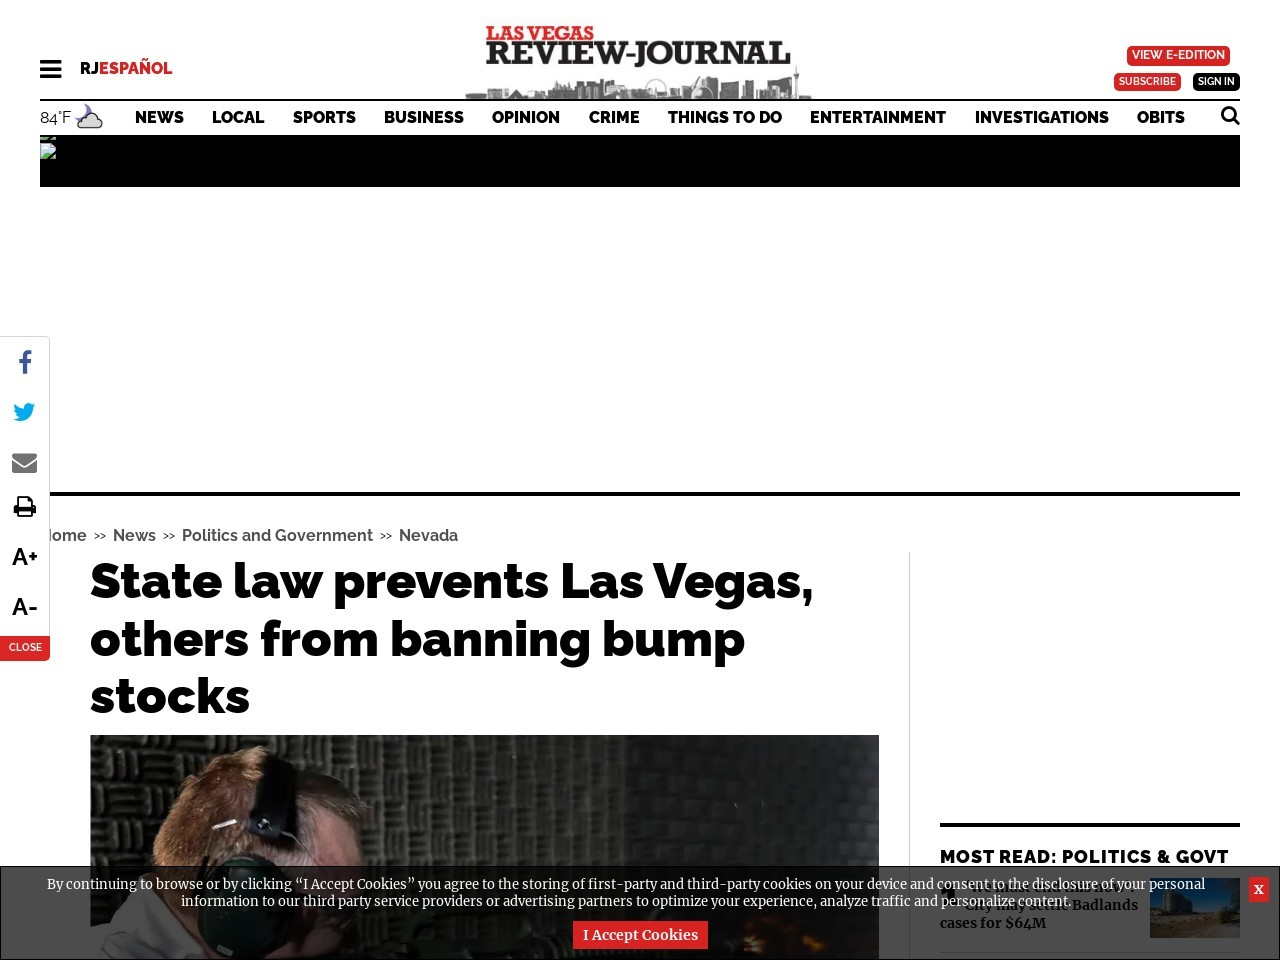 State law prevents Las Vegas, others from banning bump stocks